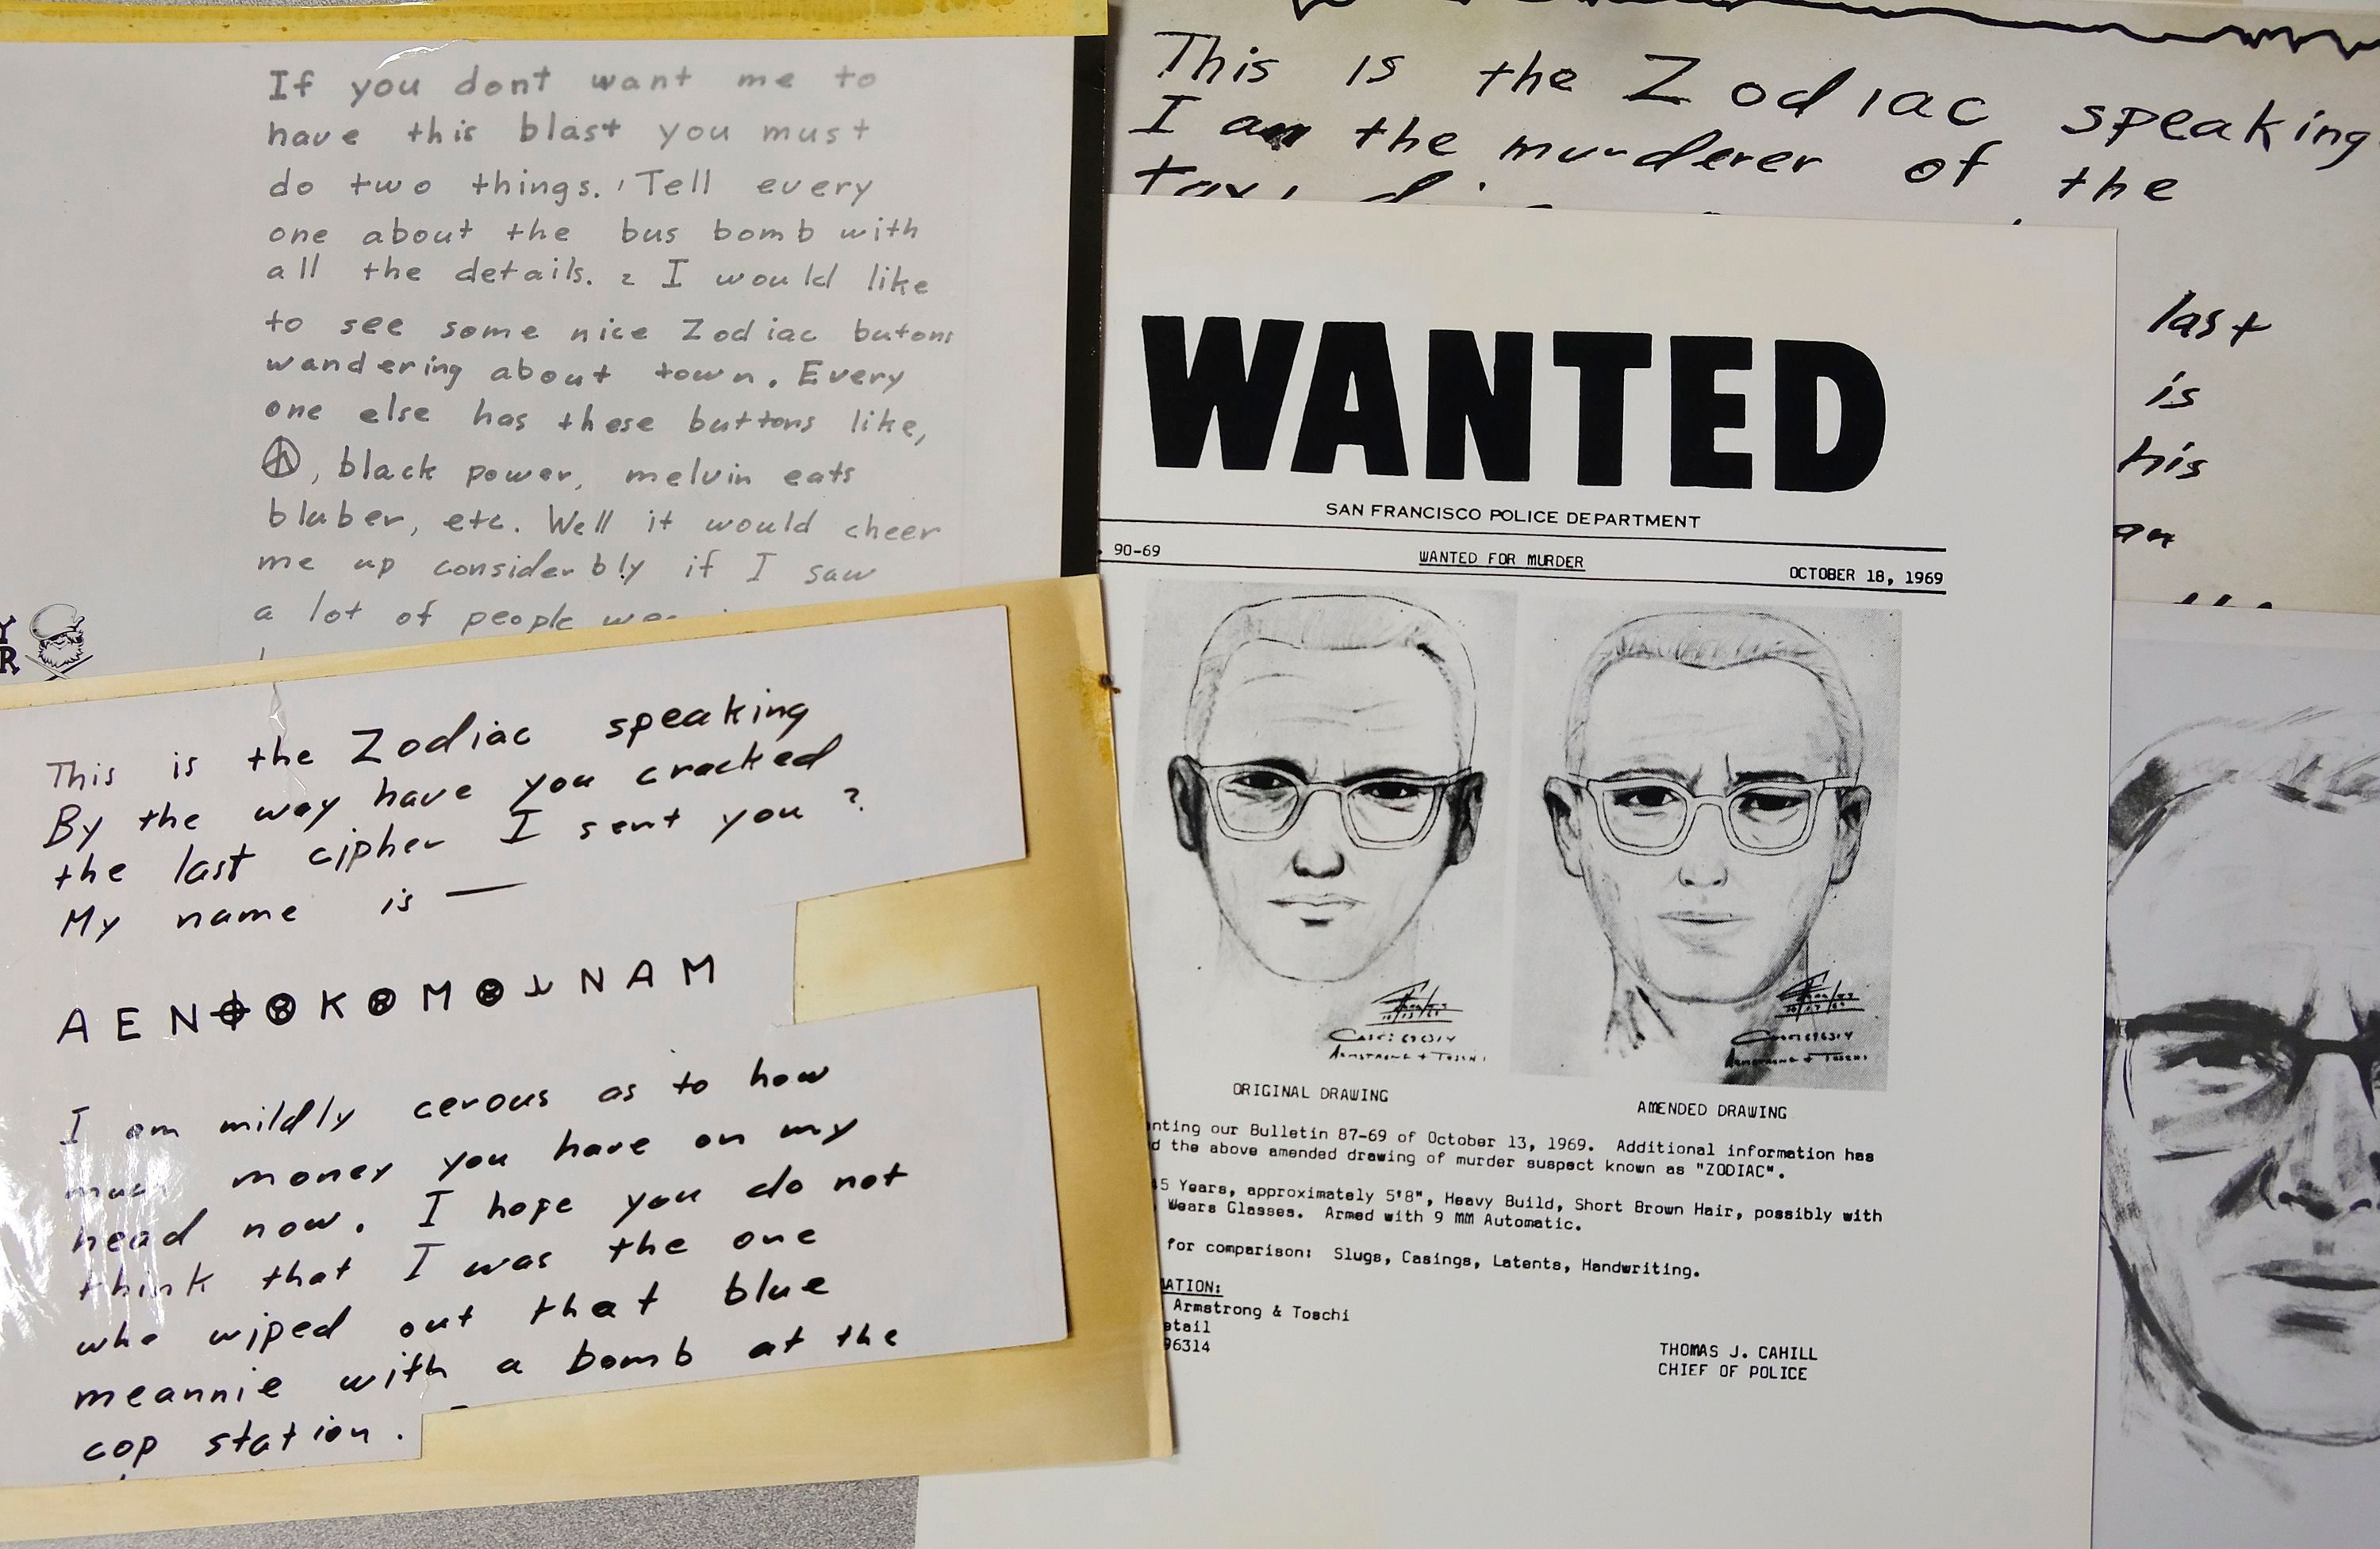 A San Francisco Police Department wanted bulletin and copies of letters sent to the San Francisco Chronicle by a man who called himself Zodiac are displayed, in San Francisco. Detectives in Northern California are trying to get a DNA profile on the Zodiac Killer to track him down using the same family-tree tracing technology investigators used in the Golden State Killer case. Vallejo police Detective Terry Poyser tells the Sacramento Bee his agency has recently submitted two envelopes that contained letters from the Zodiac Killer for DNA analysis. The Zodiac Killer stabbed or shot to death five people in Northern California in 1968 and 1969. He was dubbed the Zodiac Killer after he sent taunting letters and cryptograms to police and newspapers that included astrological symbols Zodiac Killer DNA, San Francisco, USA - 03 May 2018